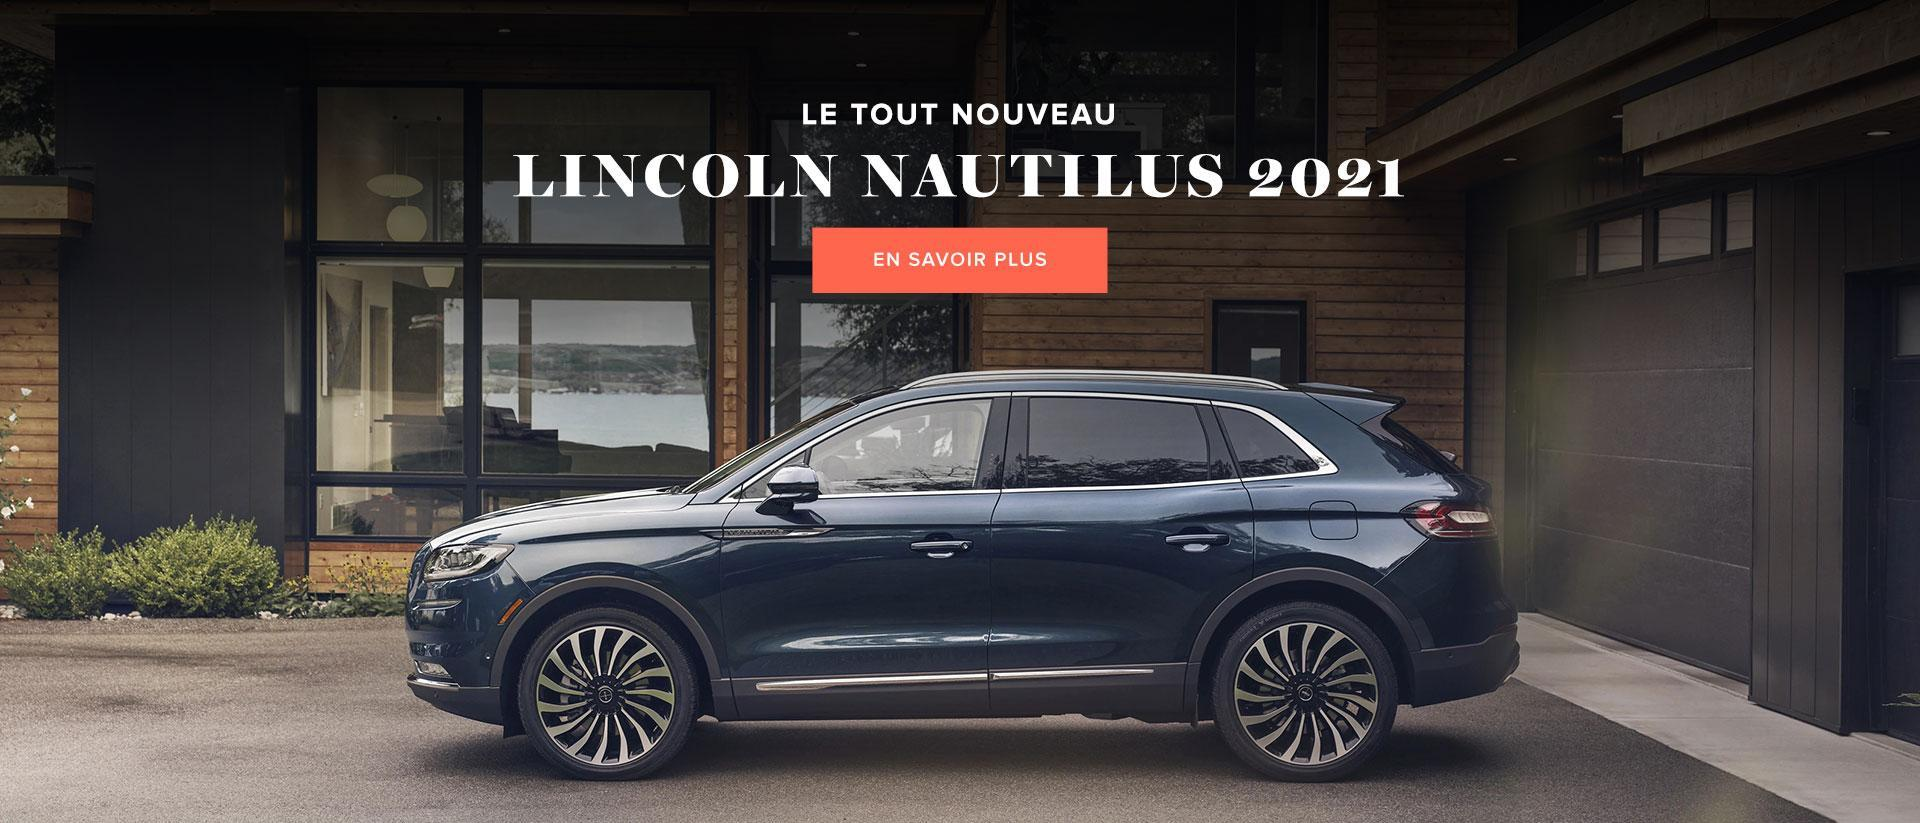 Lincoln Nautilus 2021 | Lincoln of Canada